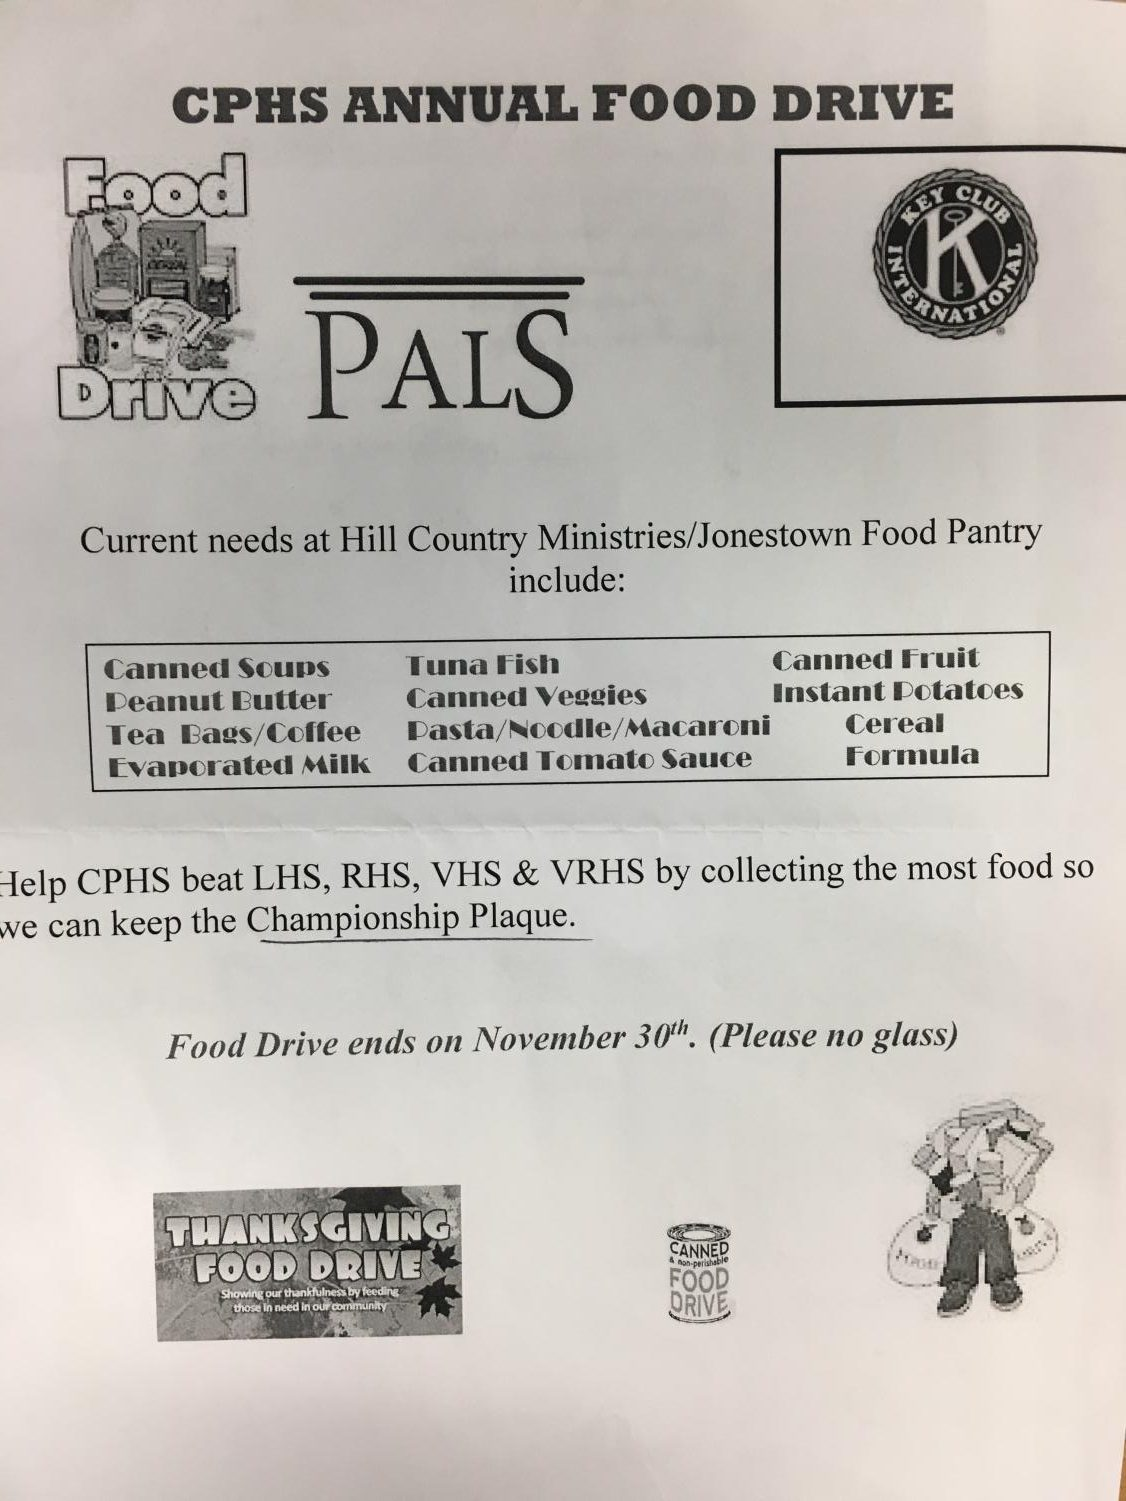 CPHS PAls/Key Club canned food drive fliers can be found hung throughout the halls of CPHS until the end of the event on Nov. 30.